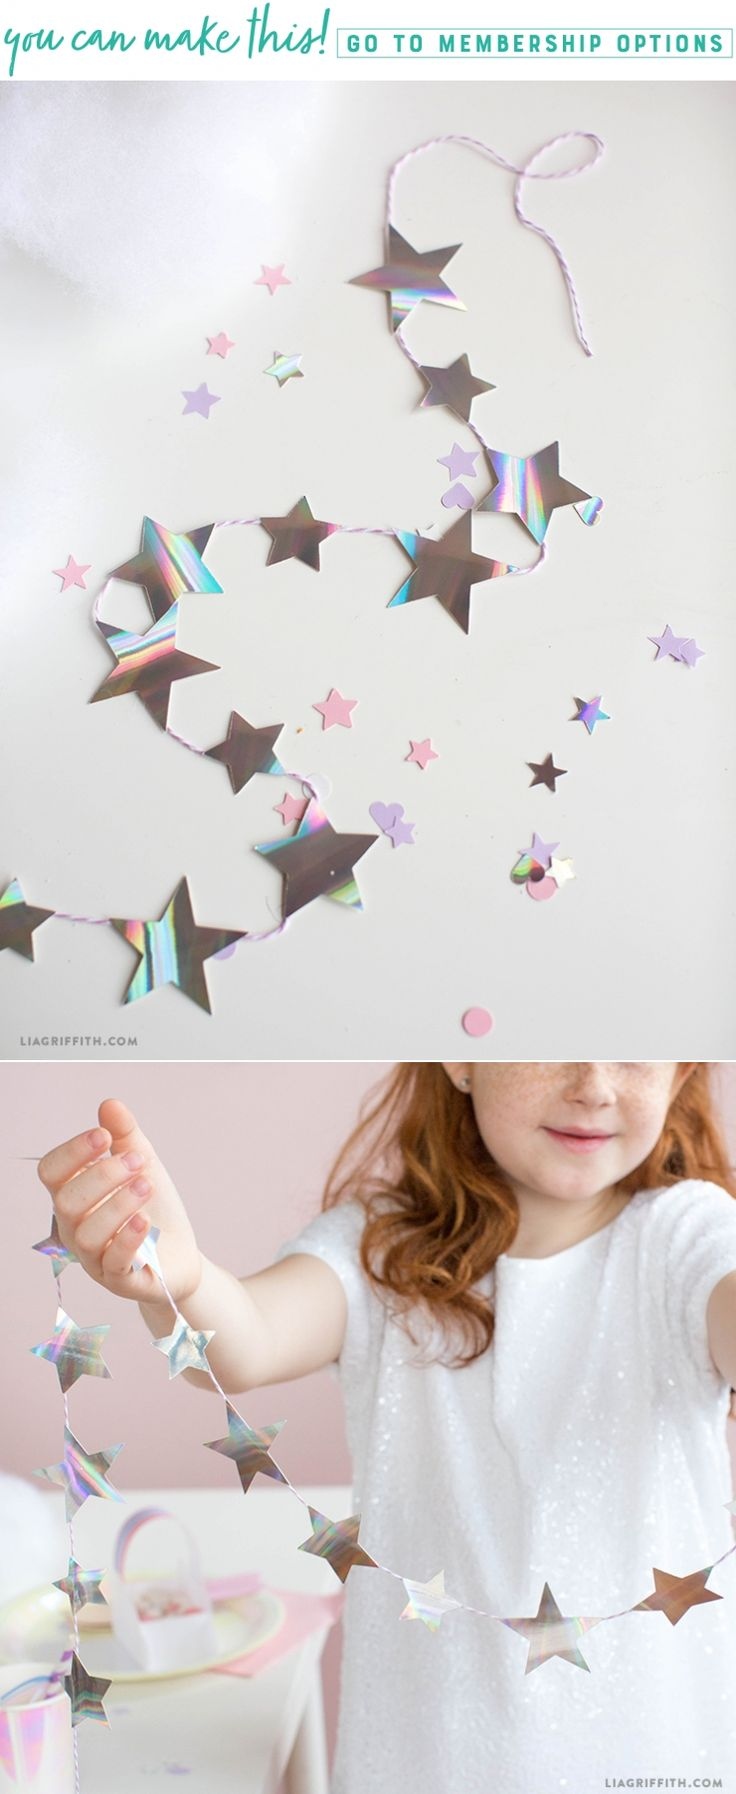 Star Light, Star Bright ⭐️✨ This star garland and confetti will have you believing in magic. We love the shine and holographic effect this paper gives. The best thing about this project is how simple it is to make. Whip up some whimsy with us. https://liagriffith.com/star-garland-and-confetti/ * * * #star #shootingstar #stars #diy #diyidea #diyideas #diycraft #diycrafts #svg #unicorn #unicorns #magic #diyproject #diyprojects #diykids #birthday #diyparty #kidsparty #kidspartydecor #confetti…